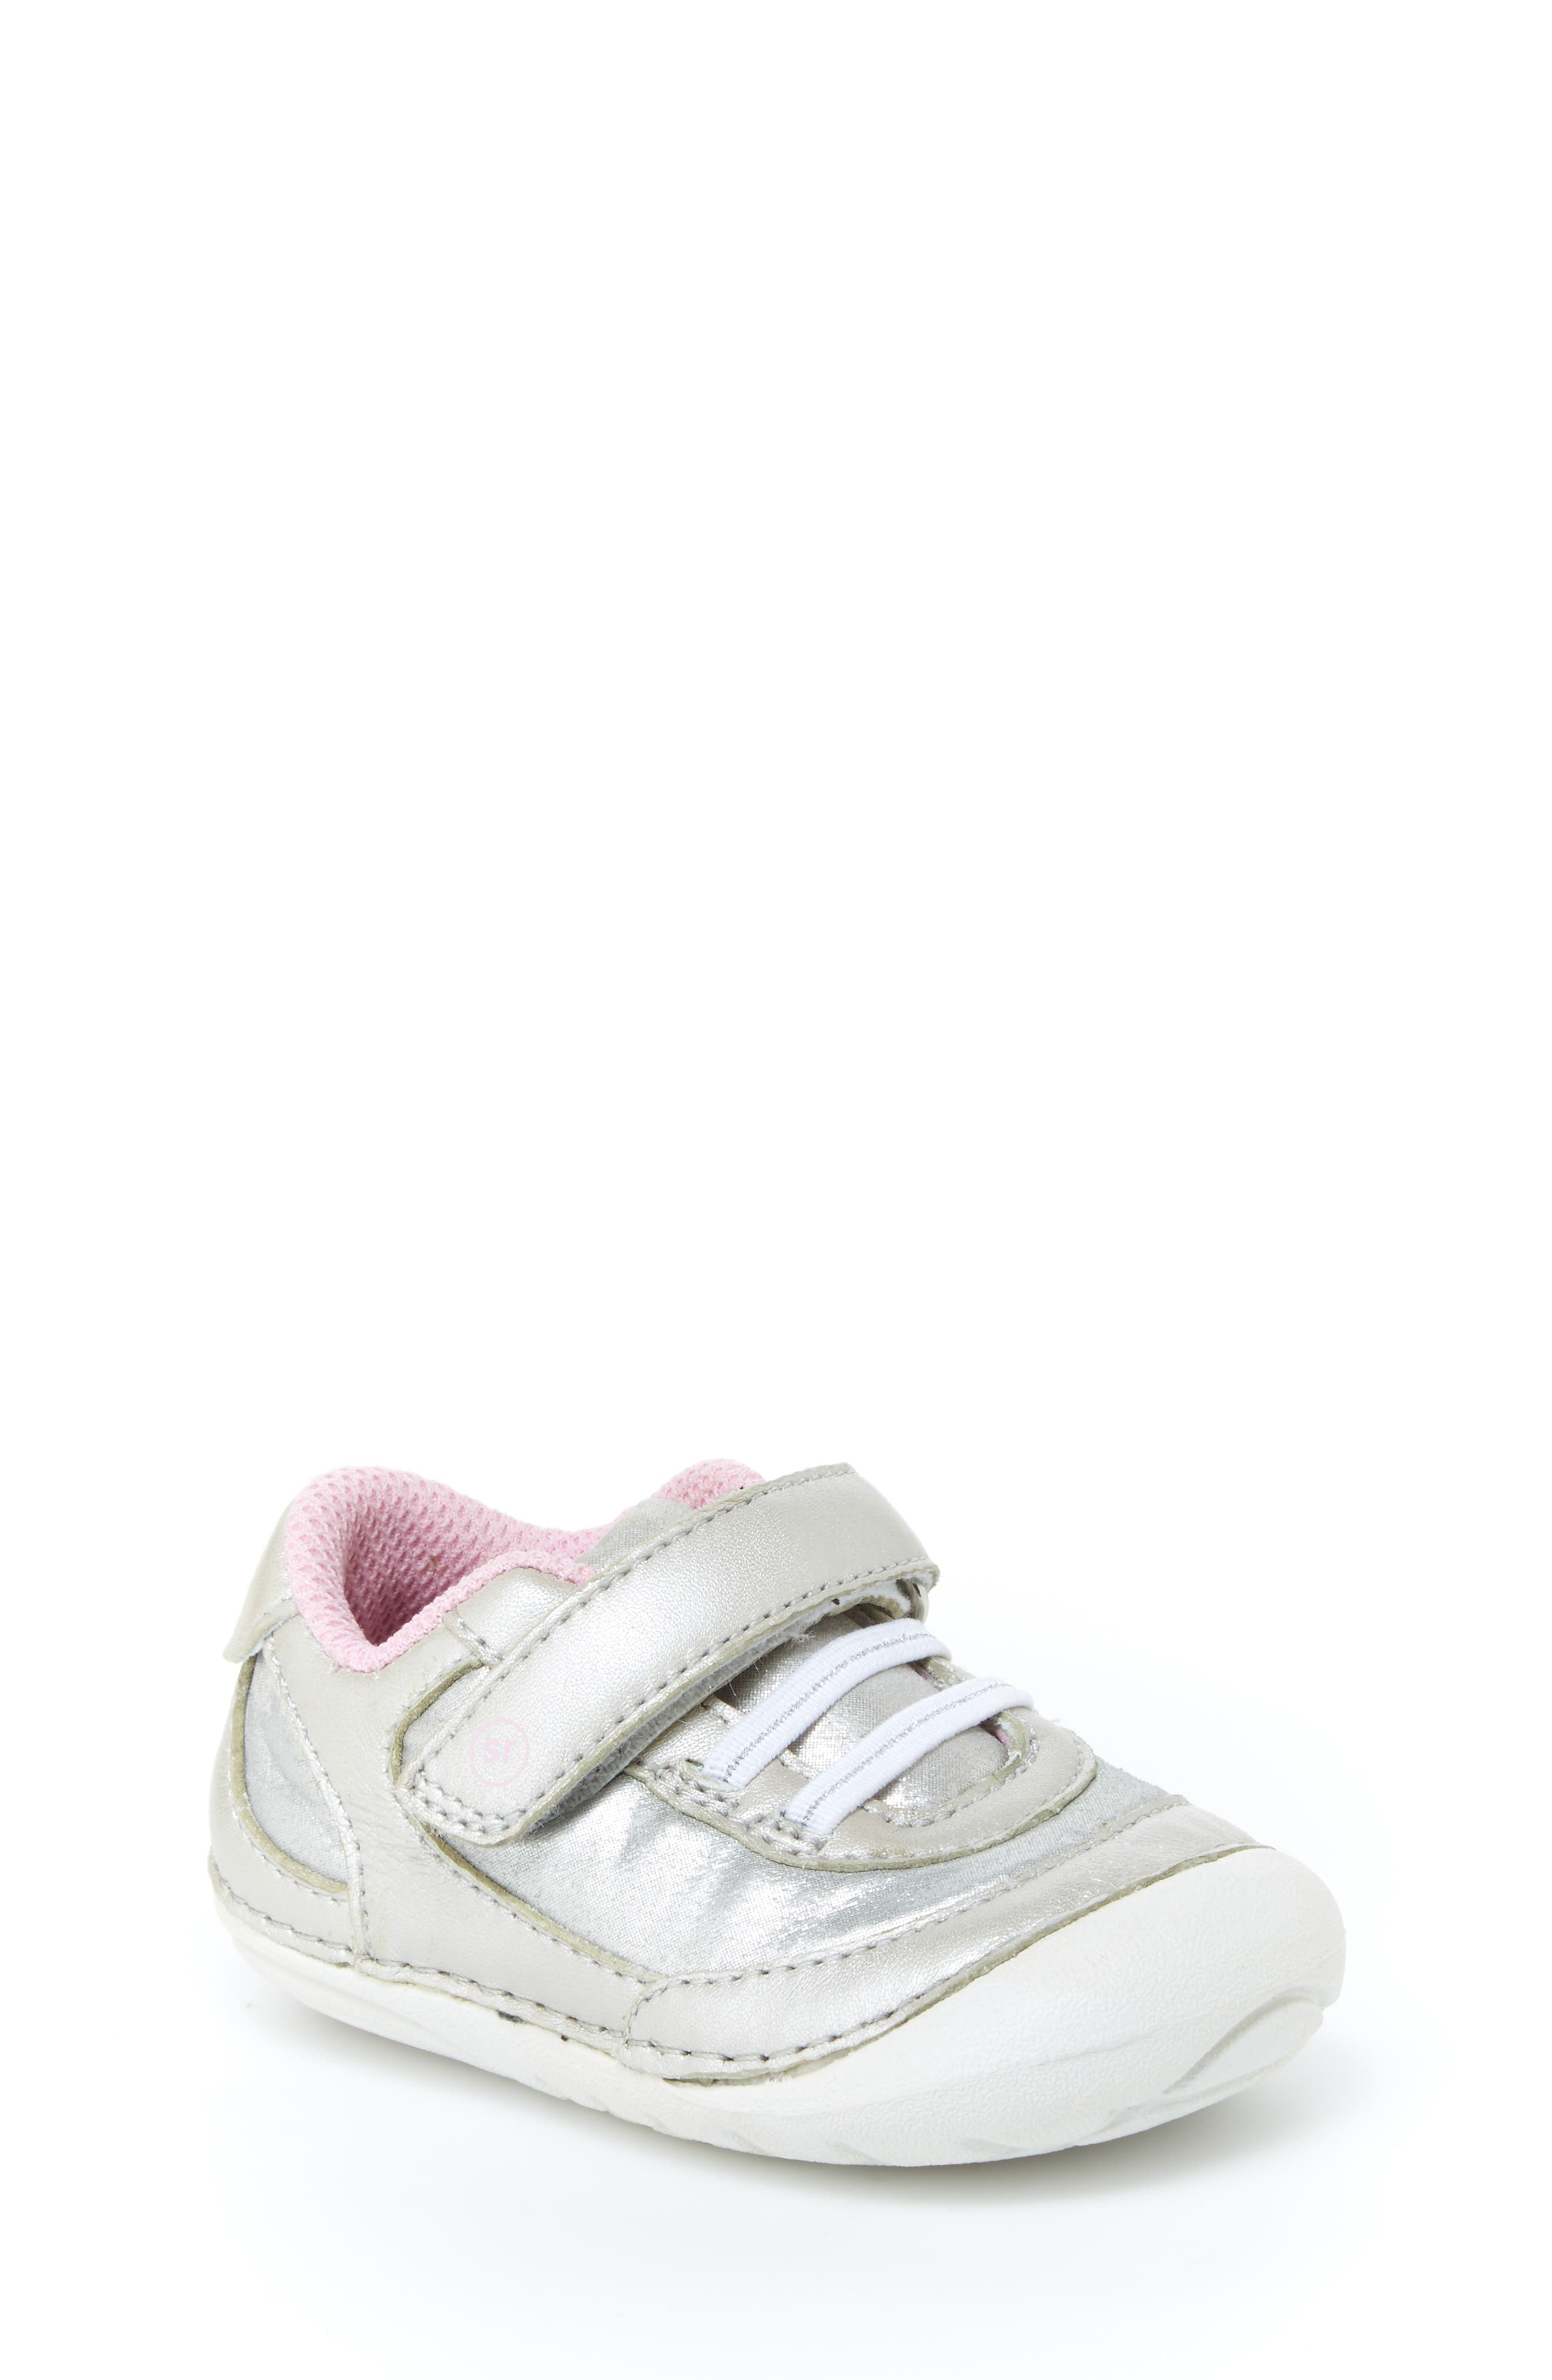 Keep little ones on their toes with a shimmery leather sneaker featuring an easy-on strap and cushy memory foam insole. Soft Motion technology increases flexibility and helps kids improve balance and develop a natural, healthy gait. Style Name: Stride Rite Jazzy Soft Motion Sneaker (Baby & Walker). Style Number: 5689935. Available in stores.